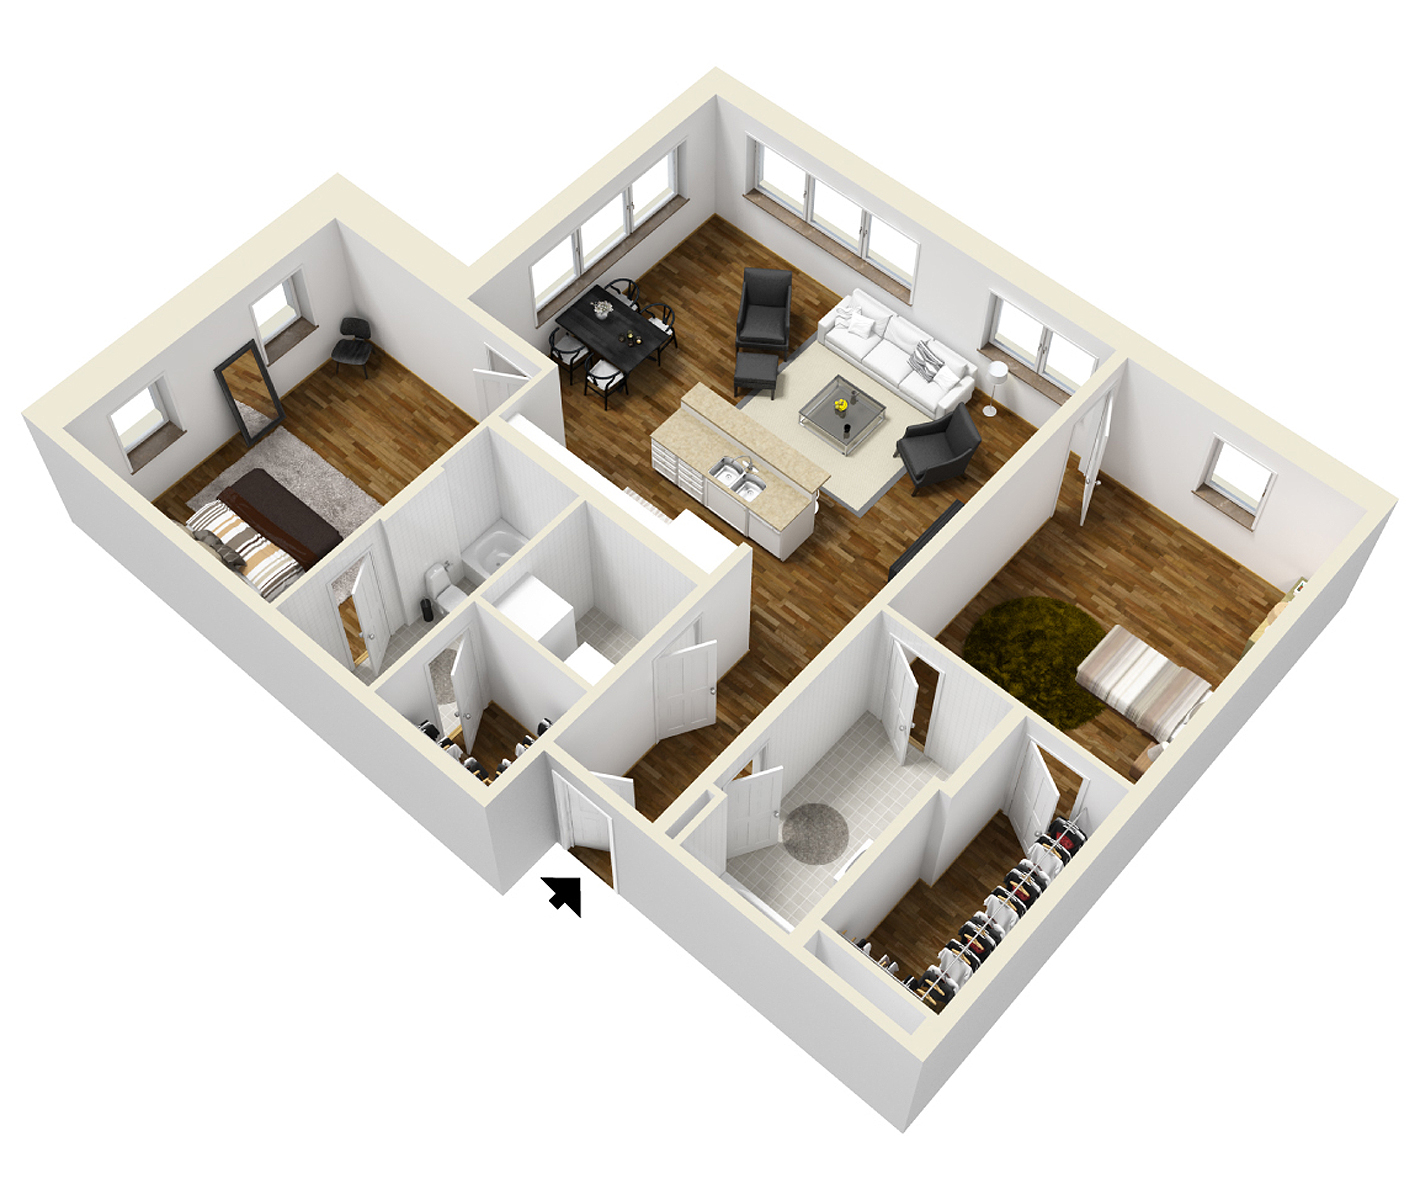 Typical two bedroom layout